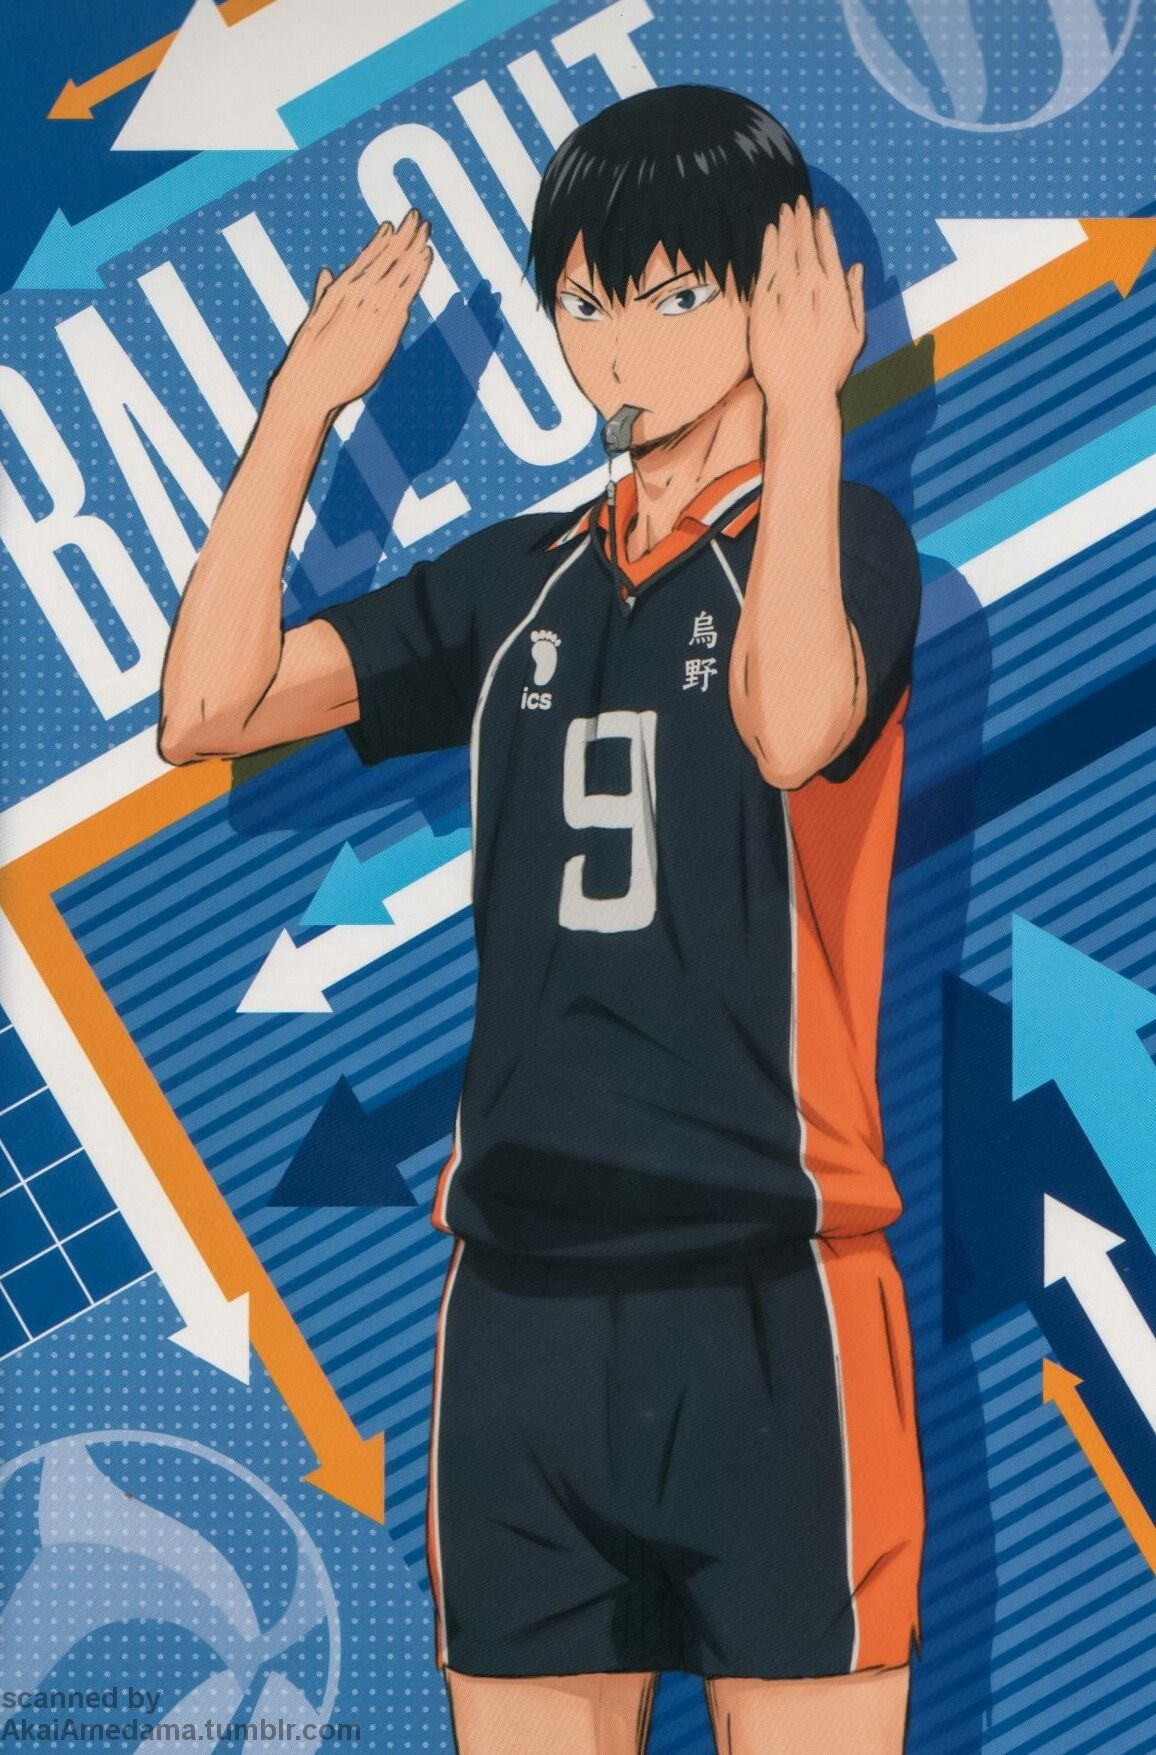 Pin By Yuki Hibara On Wall 2 0 In 2020 Haikyuu Anime Kageyama Tobio Haikyuu Kageyama